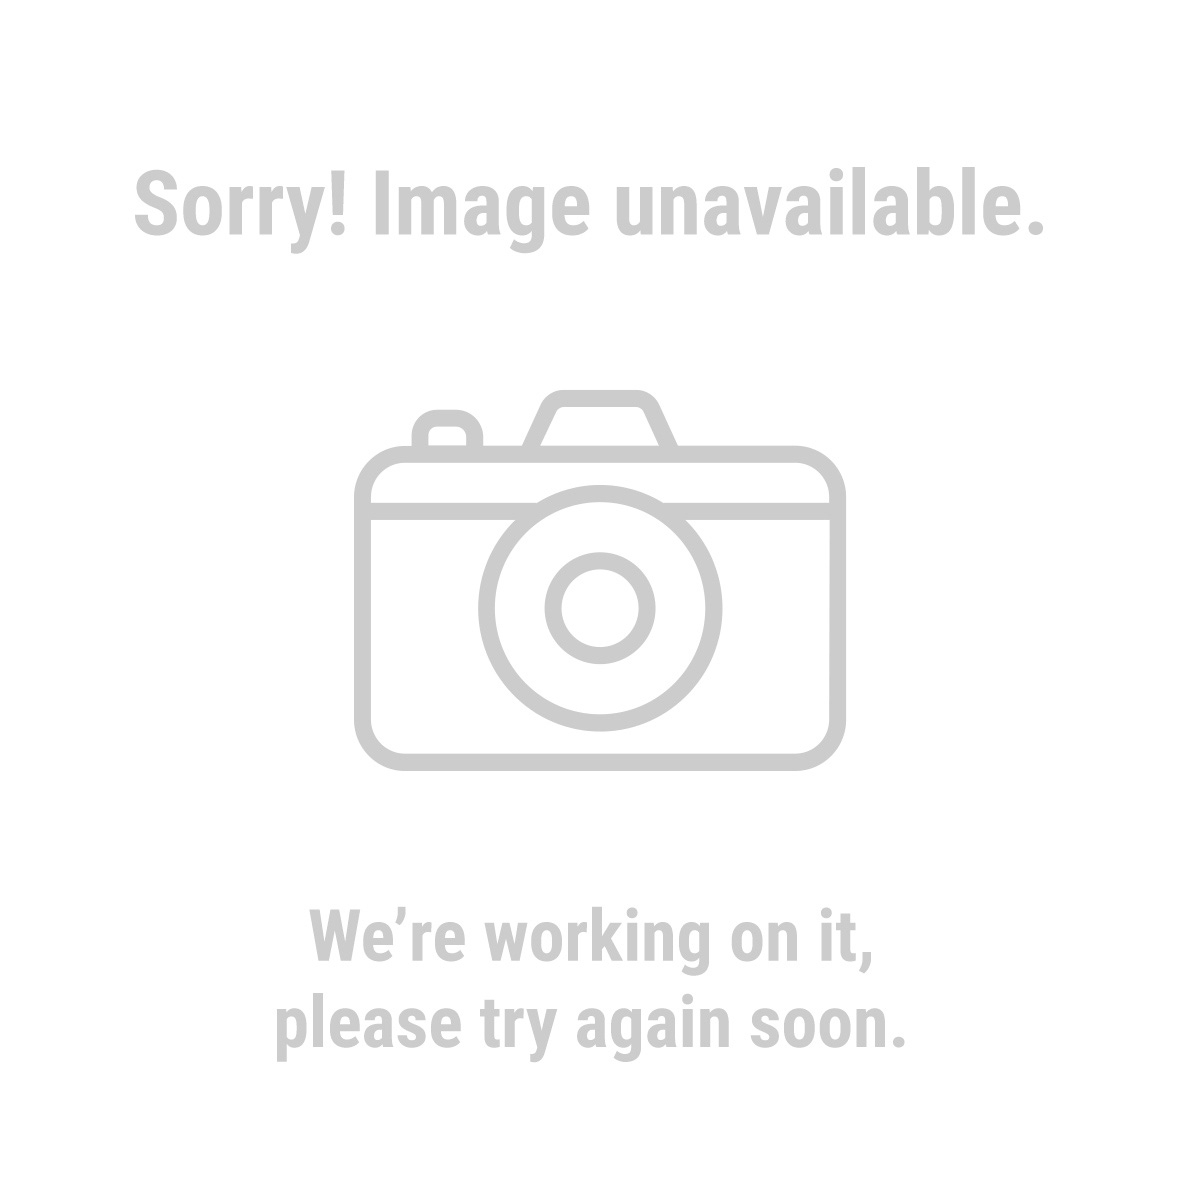 12,000 lb. Off-Road Vehicle Winch with Automatic Load-Holding Brake